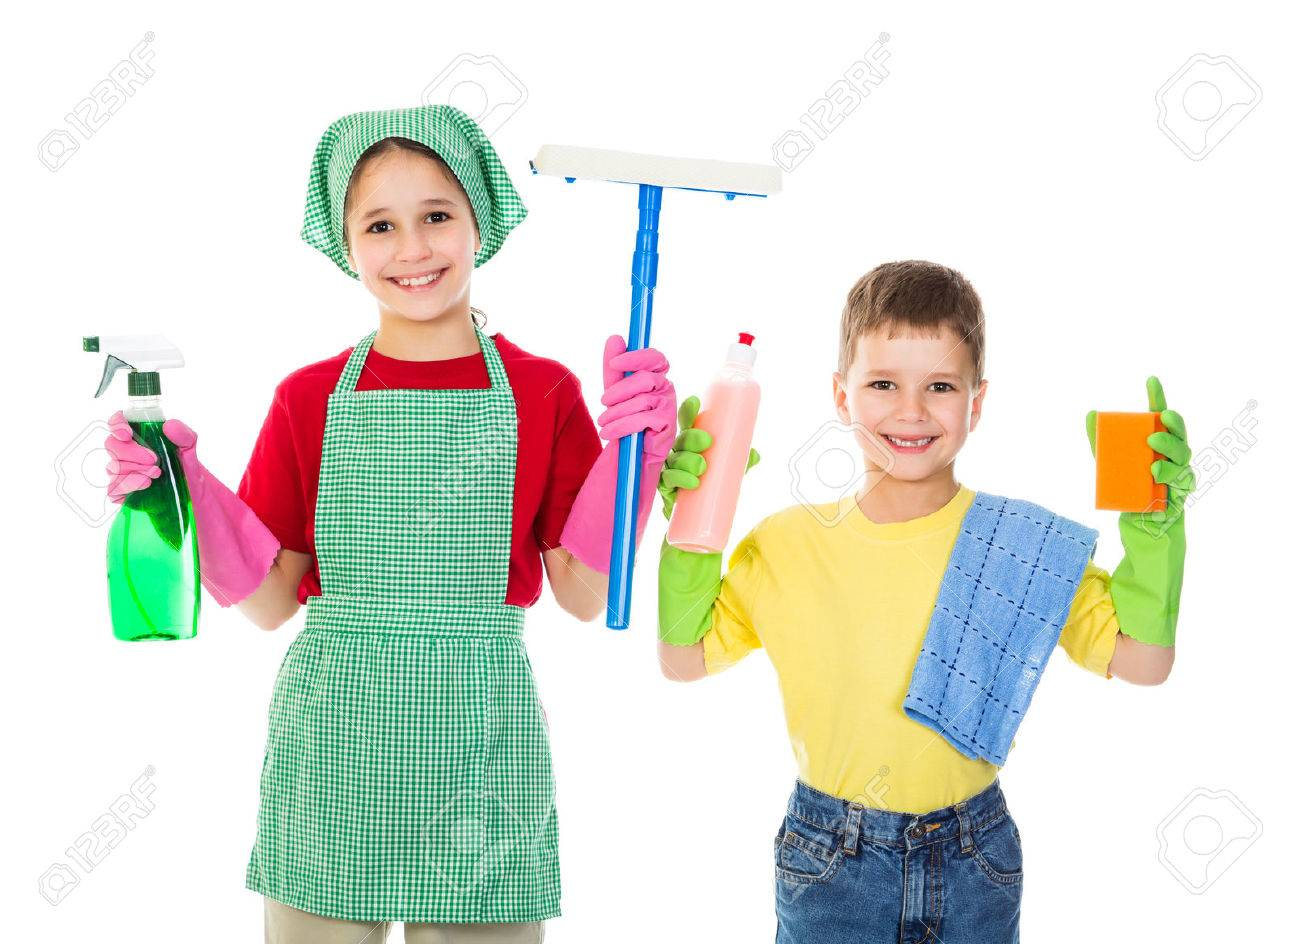 White gloves apron cleaning services - Happy Kids With Cleaning Equipment Isolated On White Stock Photo 27711512